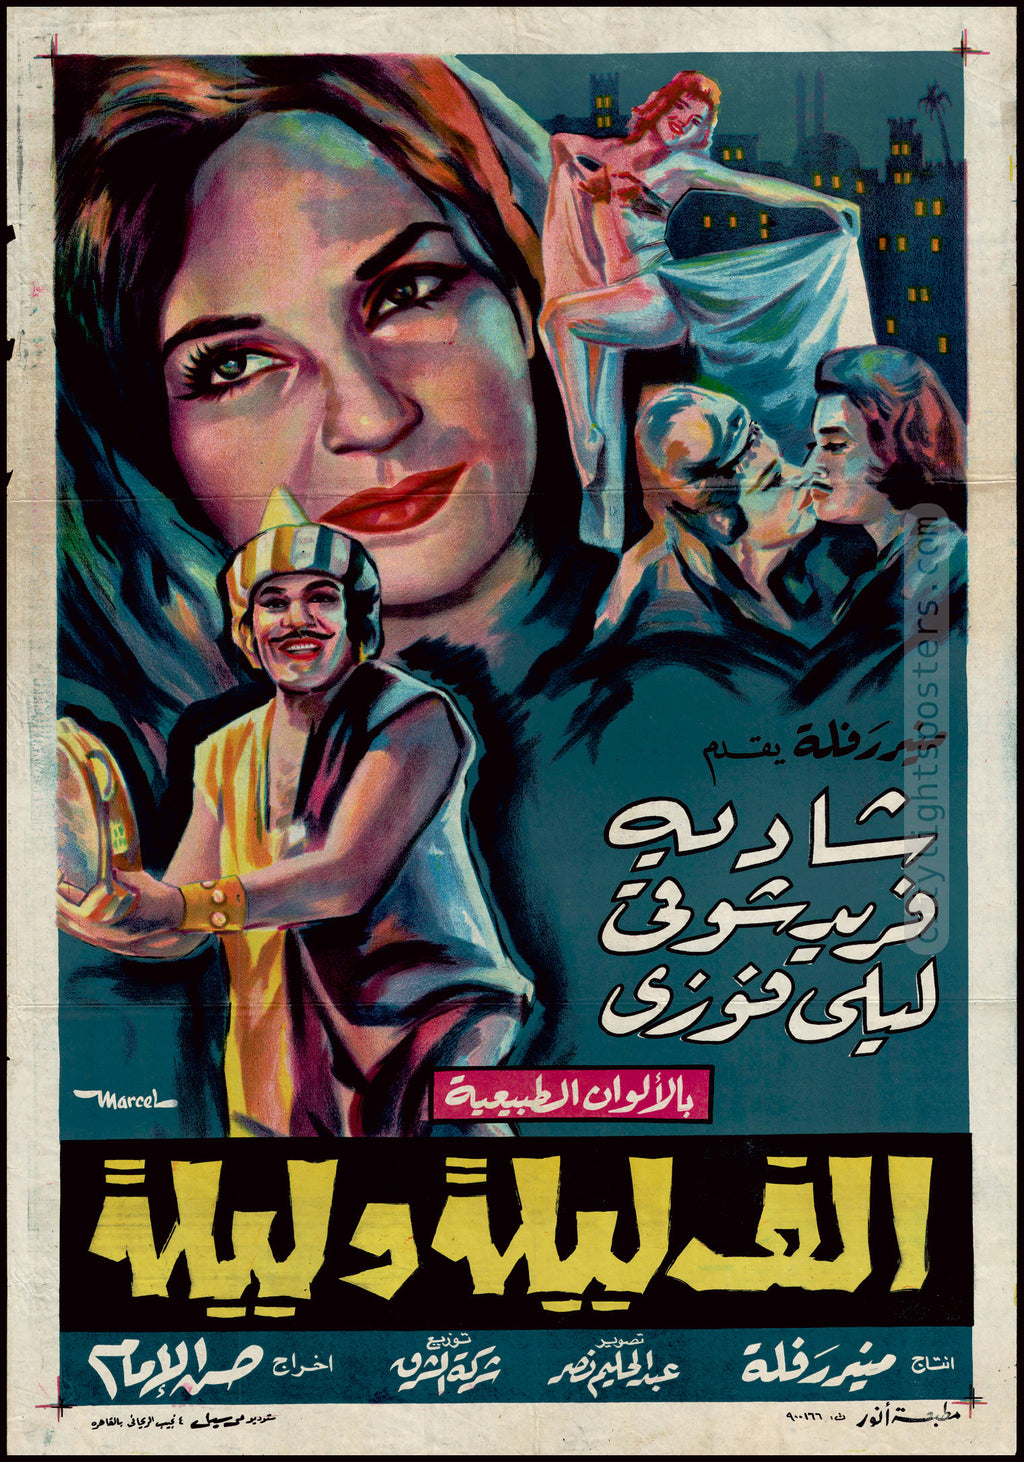 A Thousand and One Nights, Style A - ألف ليلة وليلة